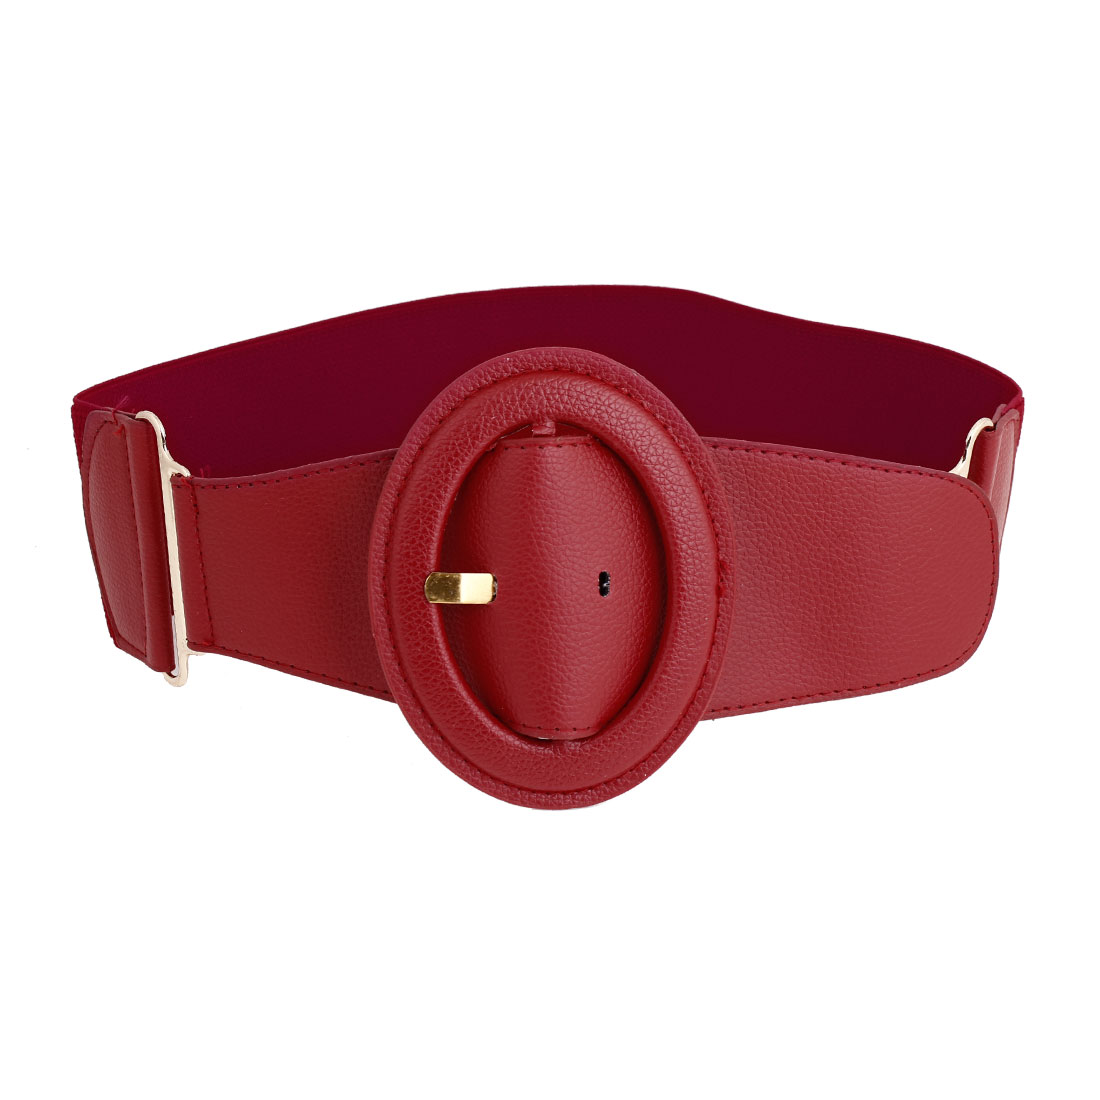 Lady One Pin Buckle Faux Leather Accent Wide Stretch Cinch Waistband Belt Red